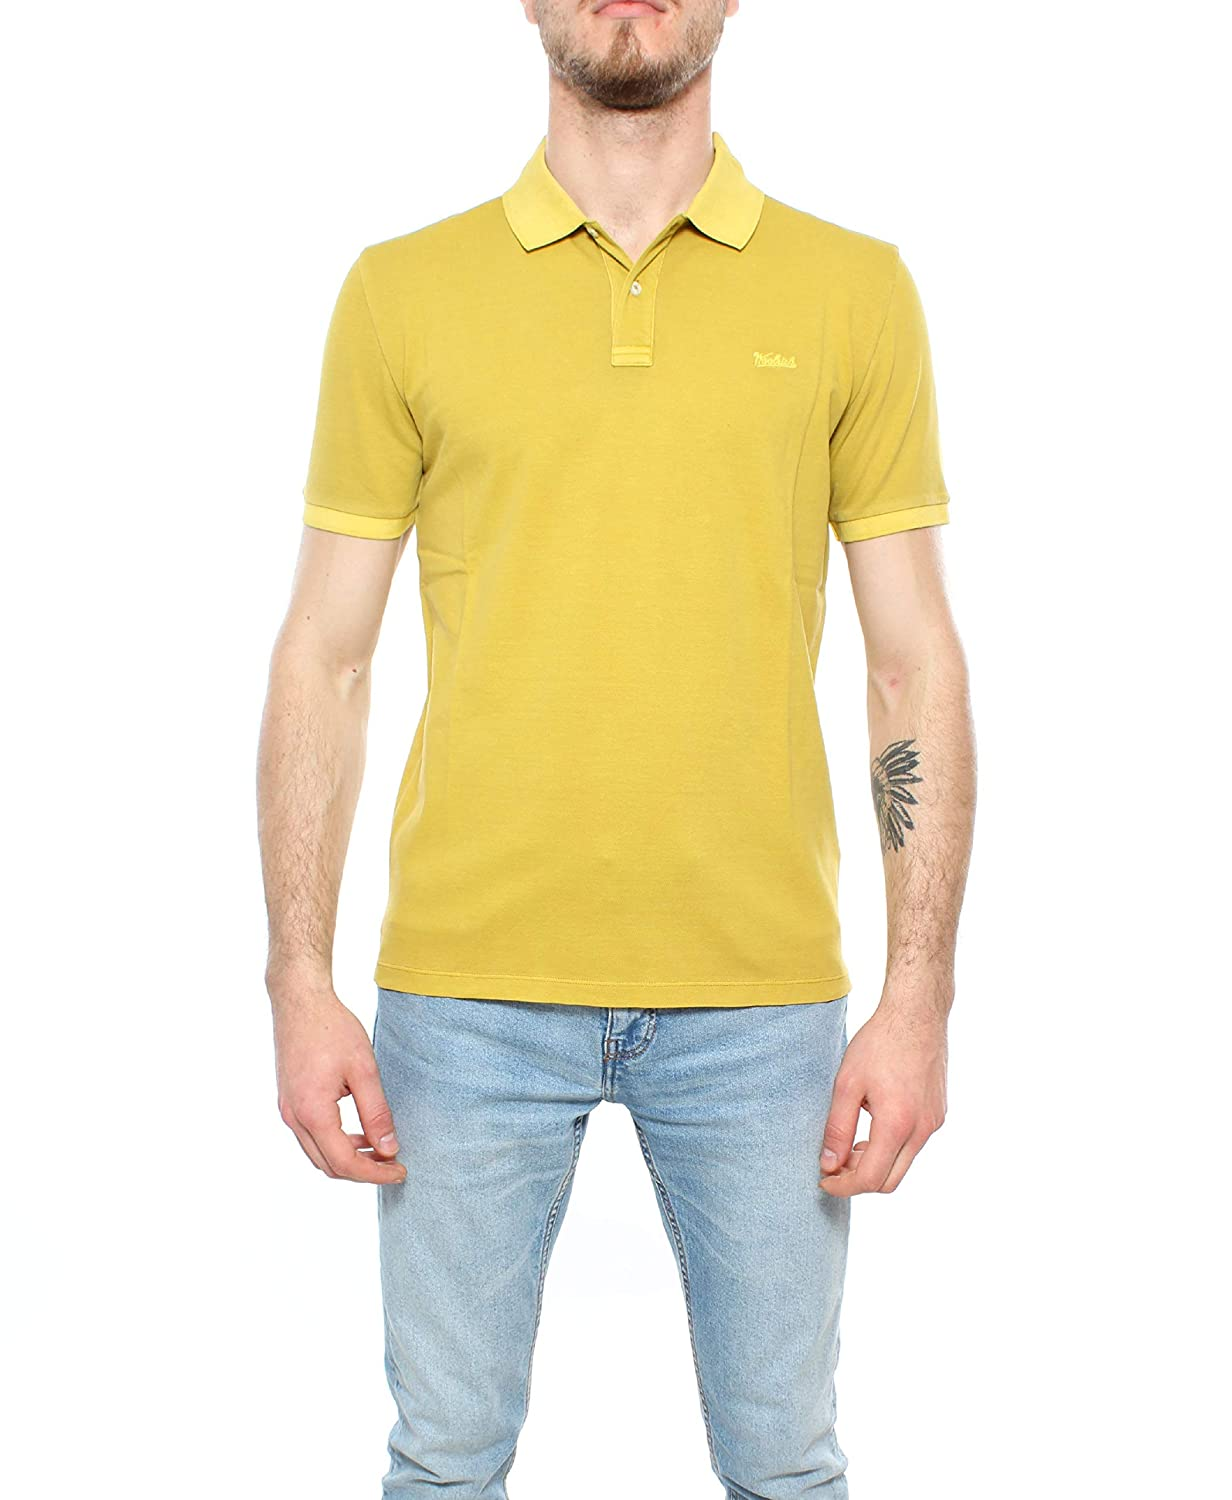 WOOLRICH 9610AA Polo uomo Vintage Lime Washed Cotton Polo t-Shirt ...